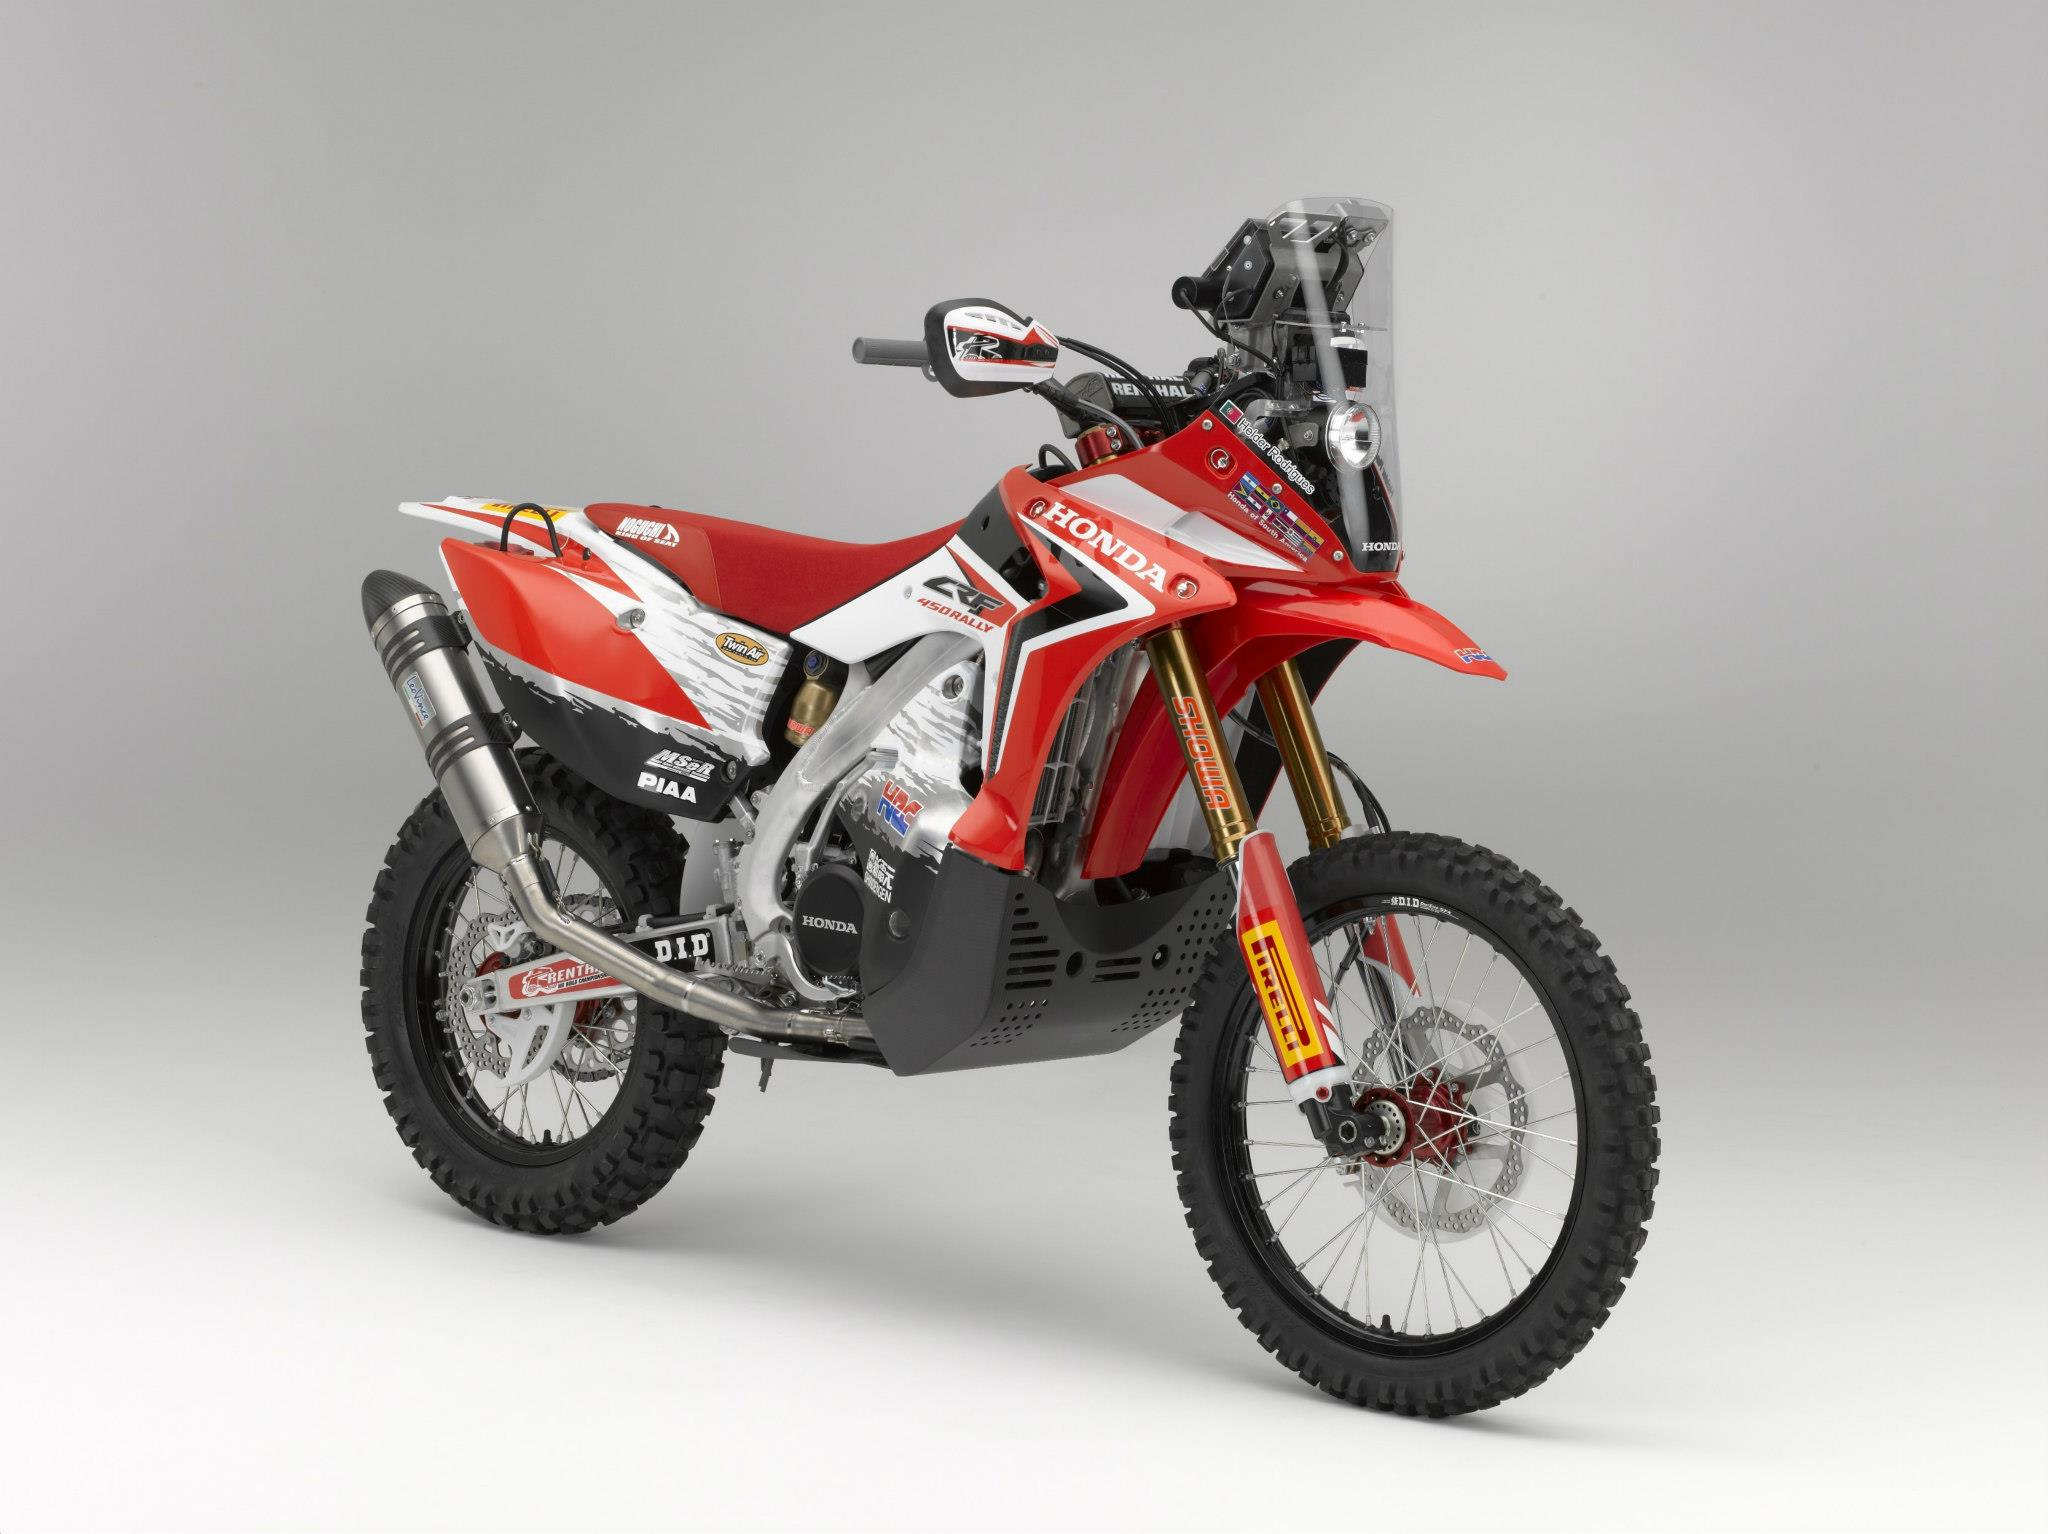 Honda Crf 450 Dakar Model Debut Enduro360 Com